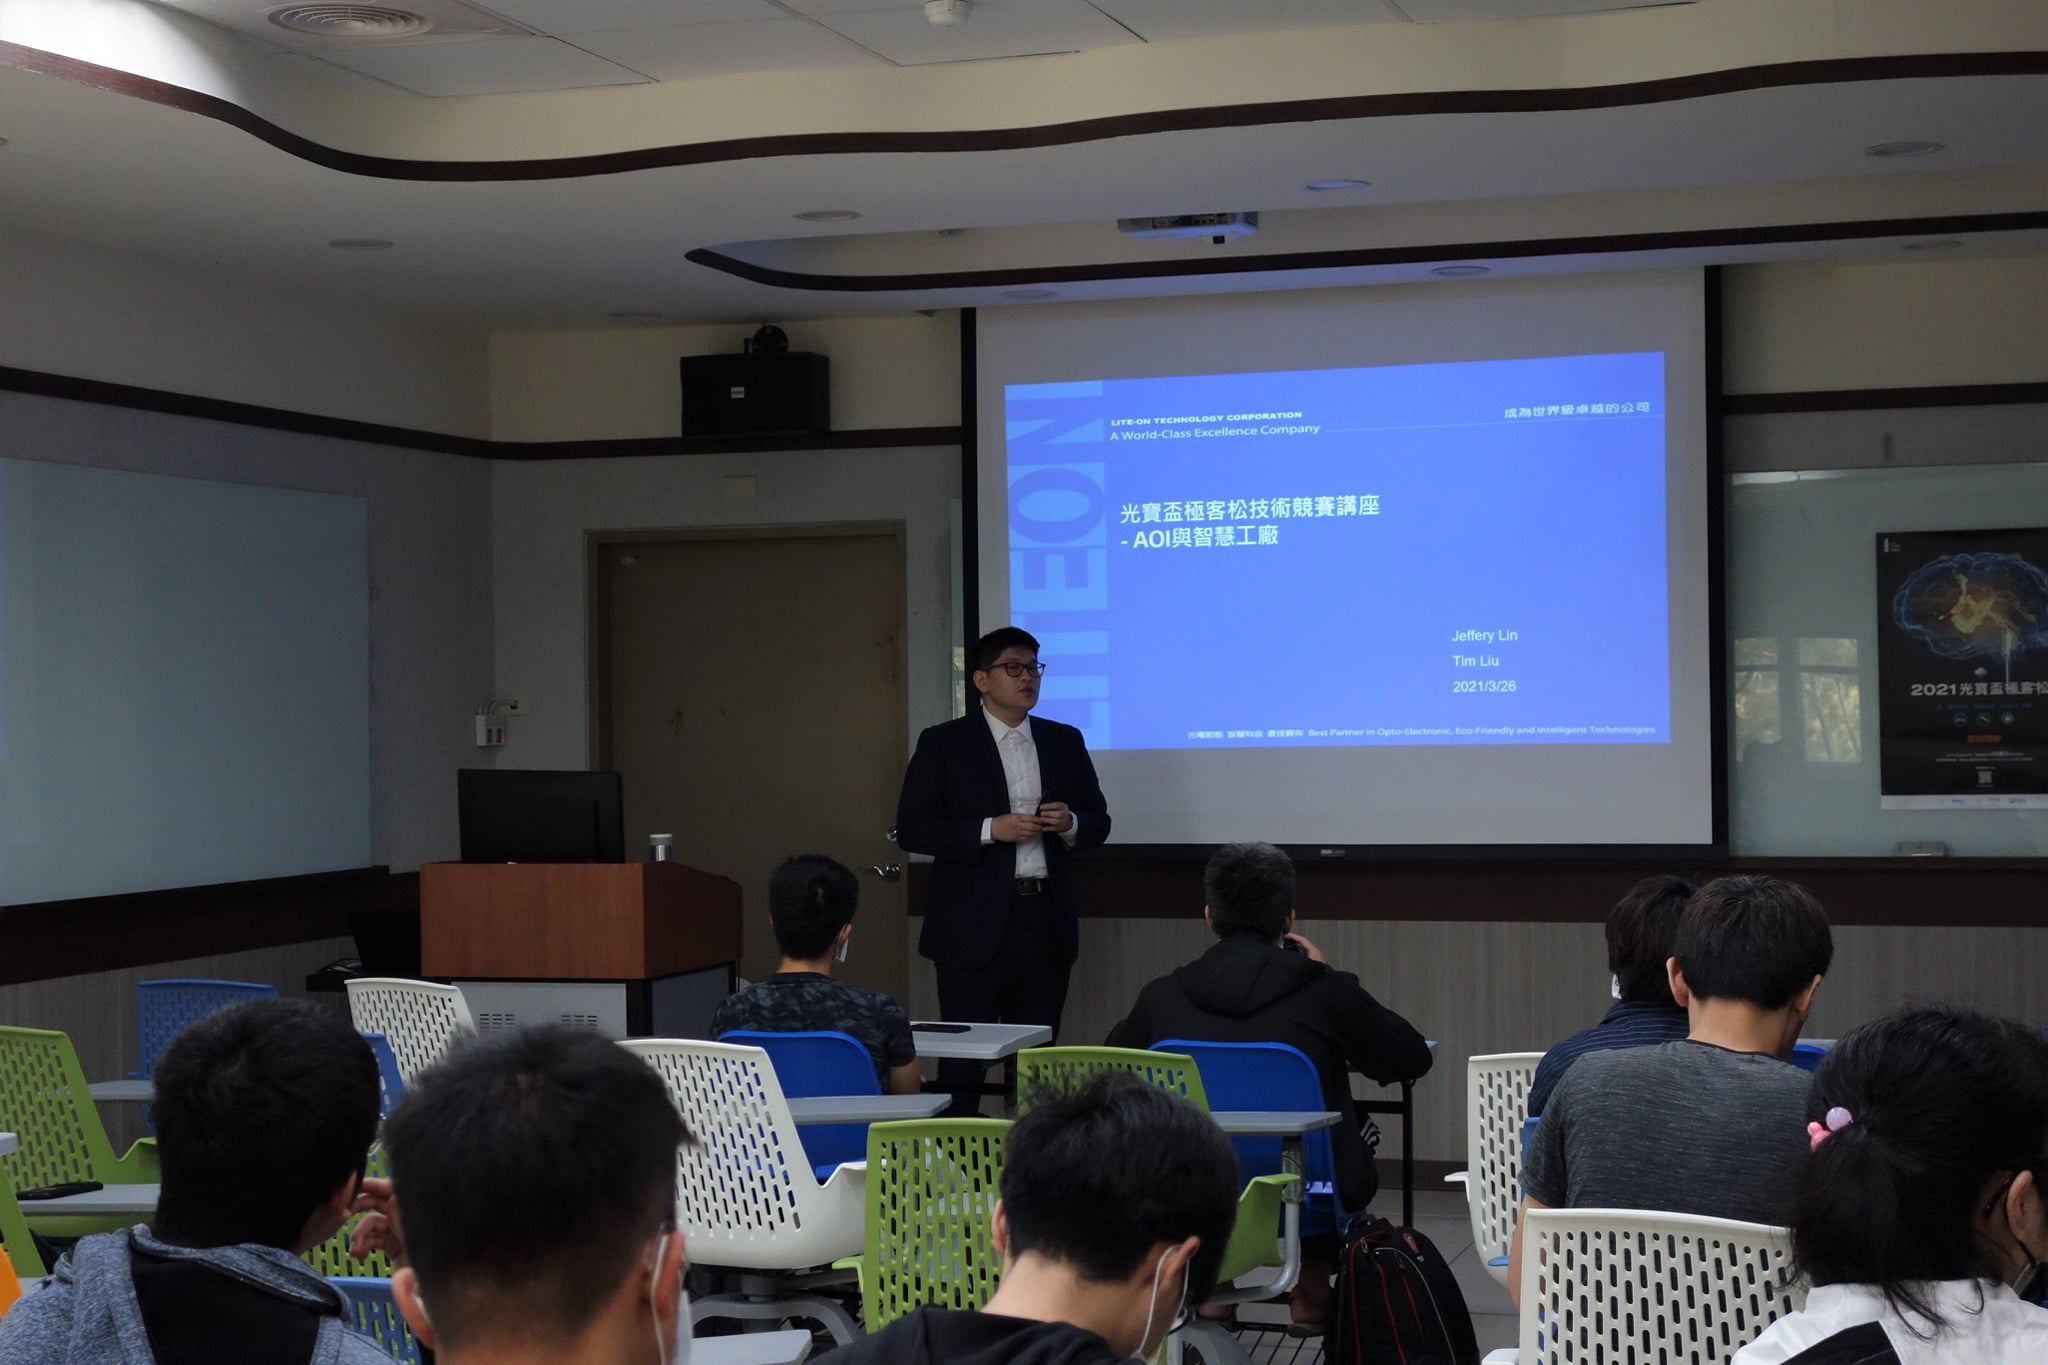 【The Liteonaward Geekathon Briefing Meeting Yuntech Session】01